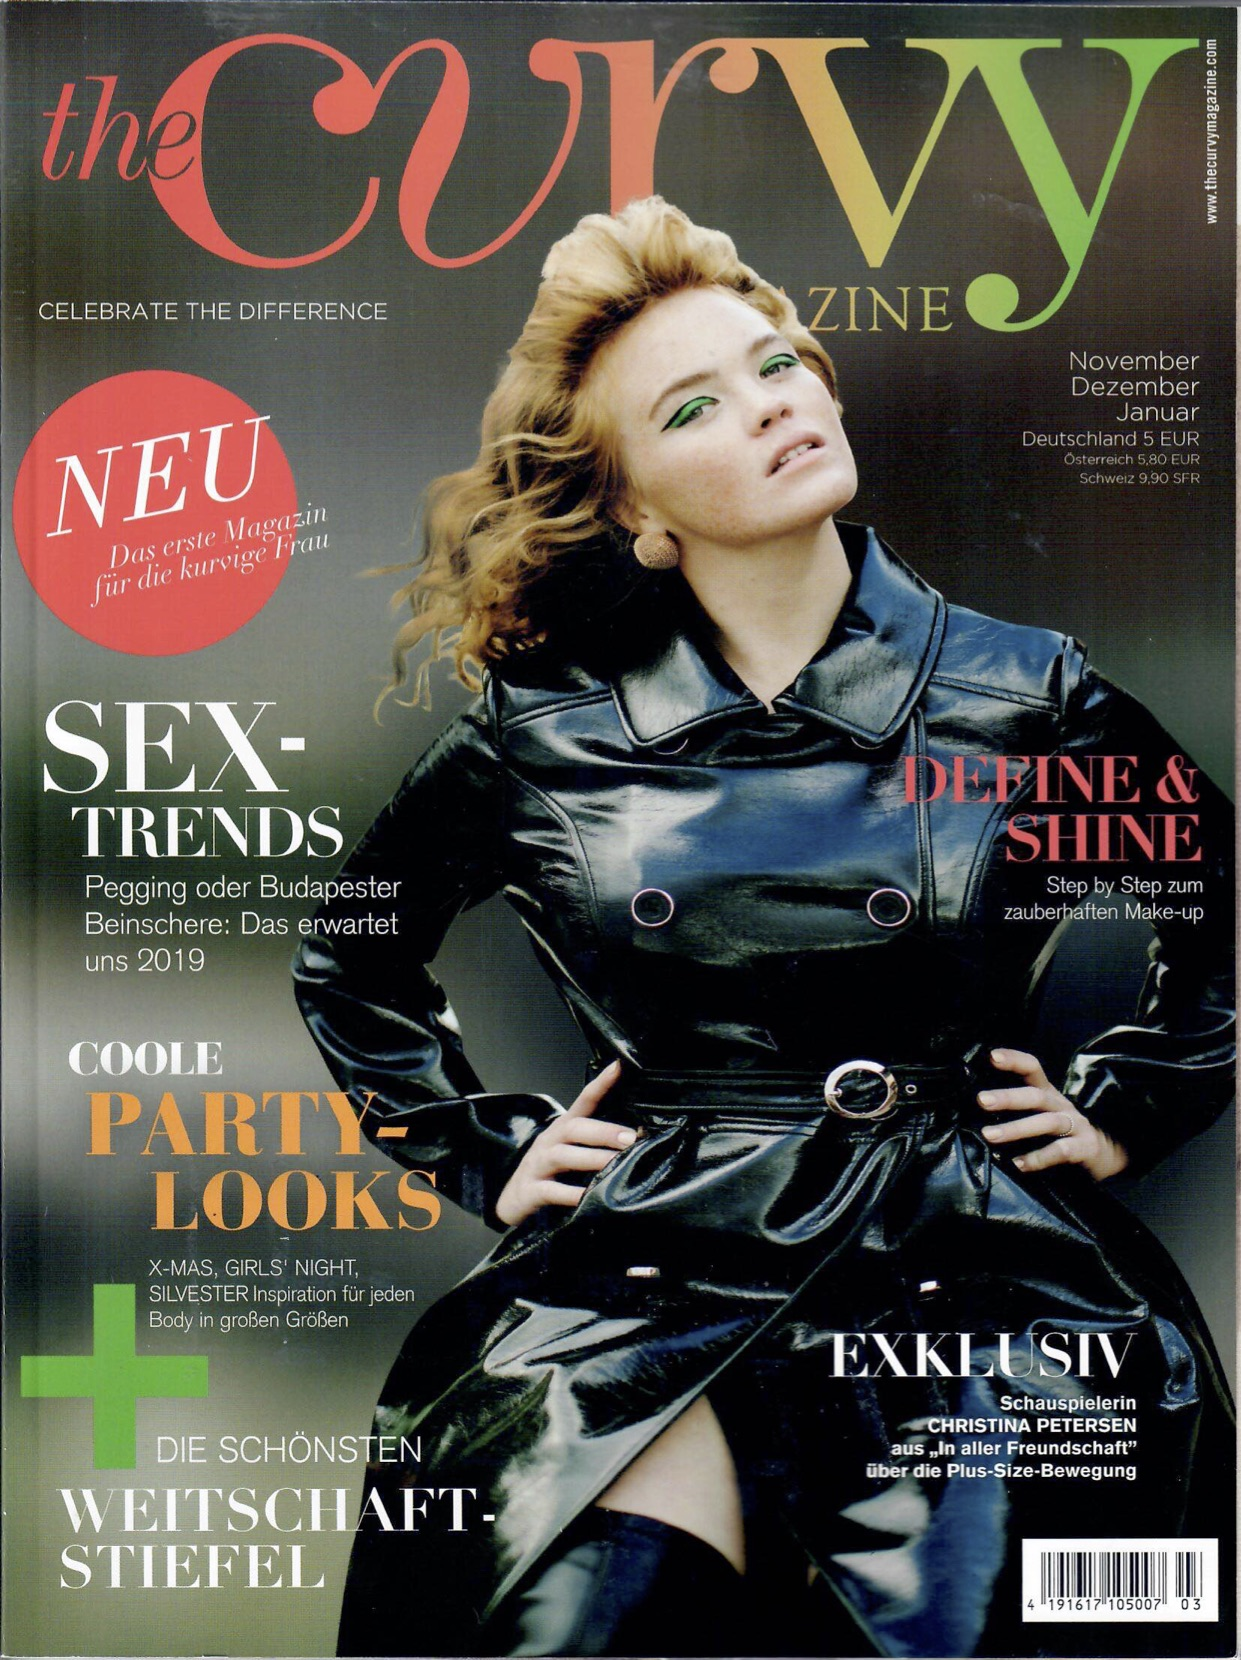 The Curvy Magazin Winter 2018